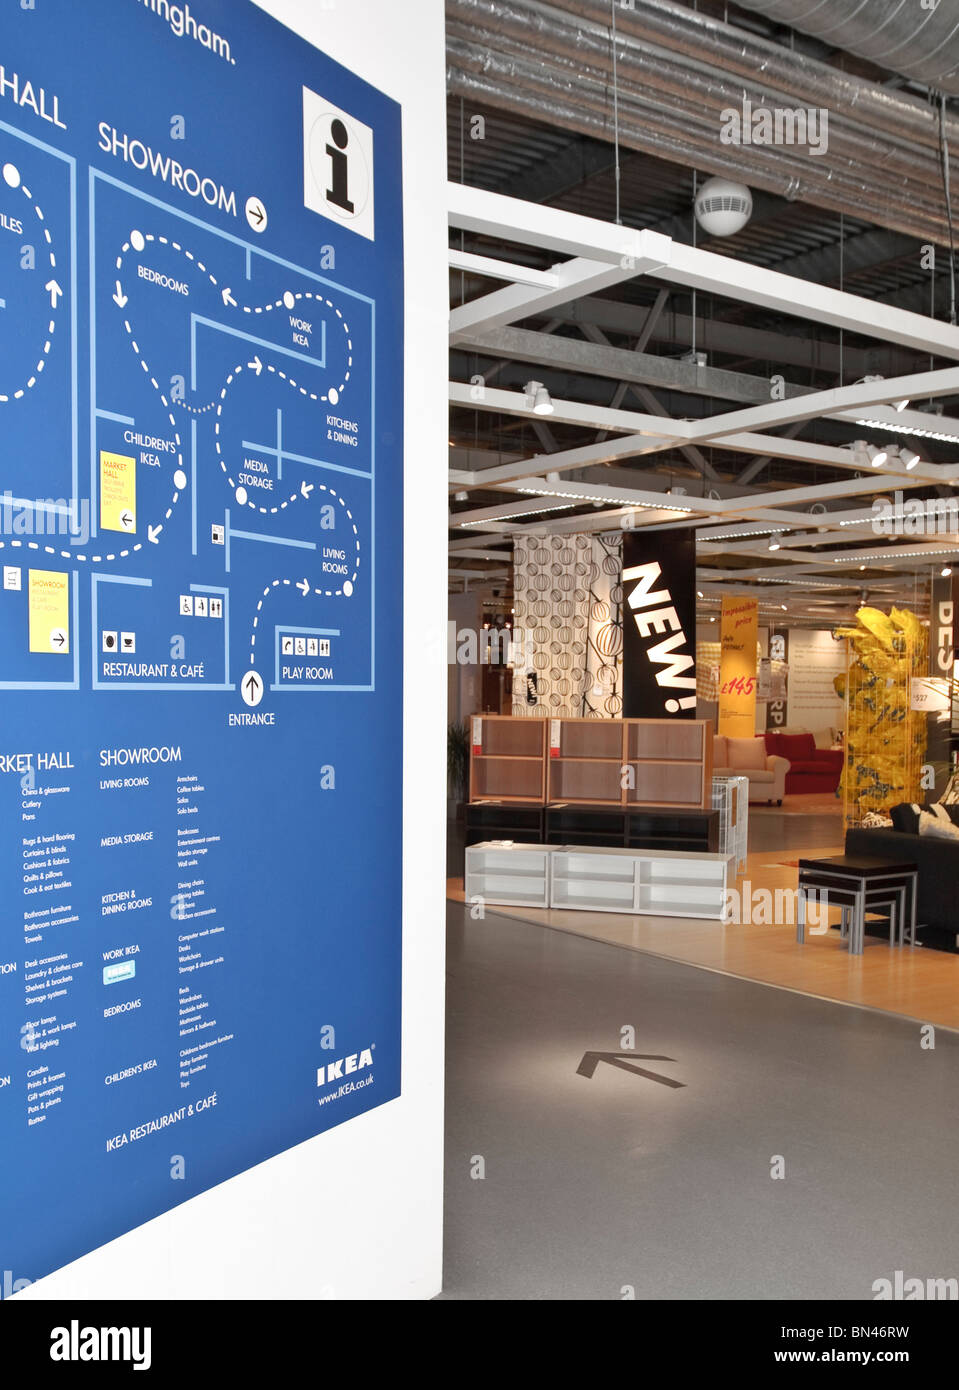 Entrance Of Ikea Nottingham, The Swedish Retail Furniture Shop. Showroom  And Markethall Map Plan